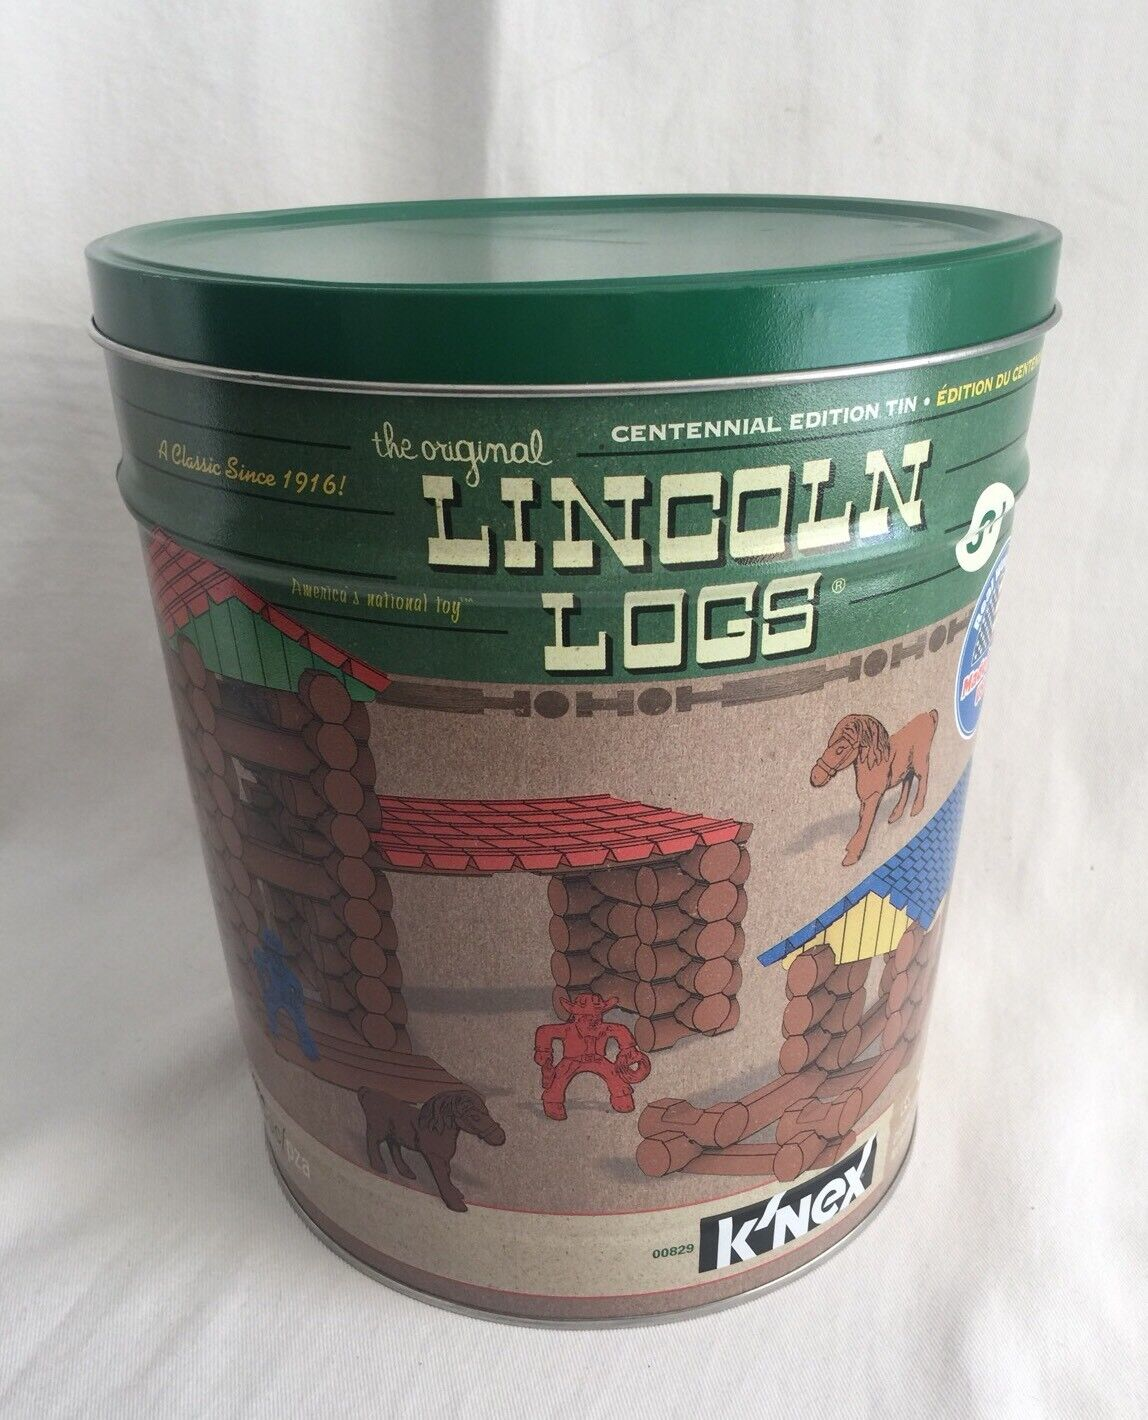 Lincoln Logs Logs Logs Centennial Edition Tin 154 Pieces 11d73a